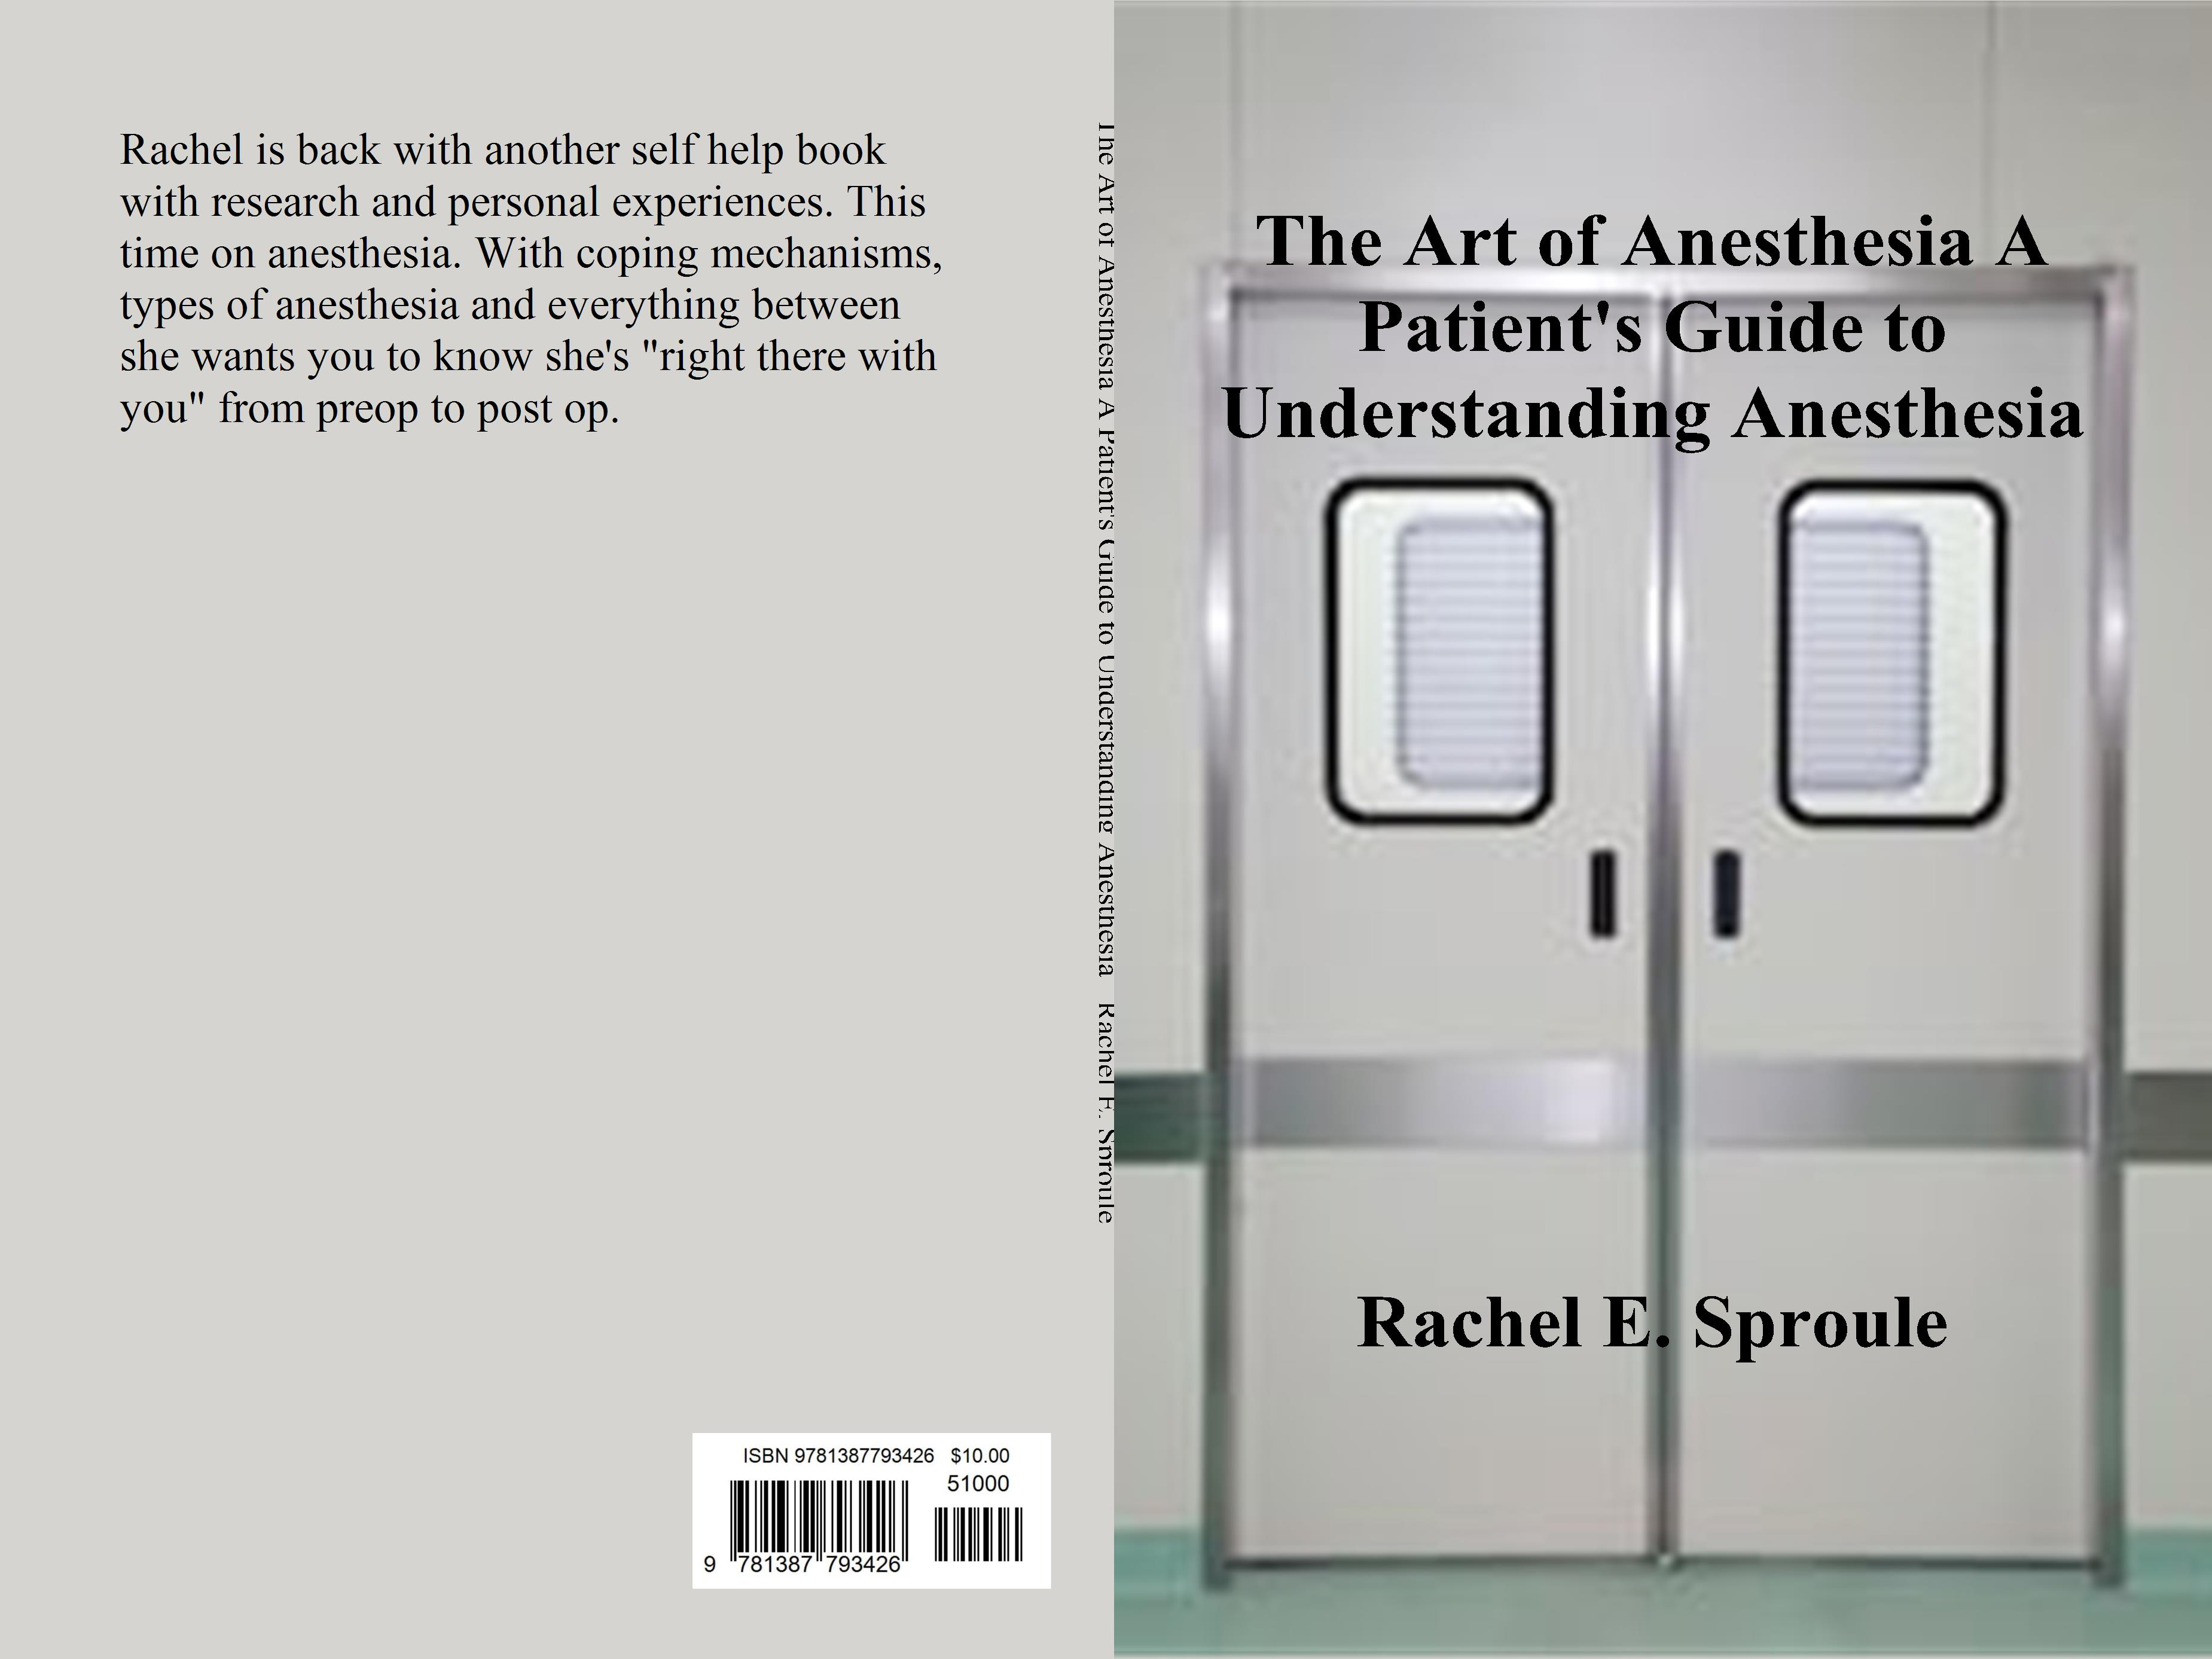 The Art of Anesthesia A Patient